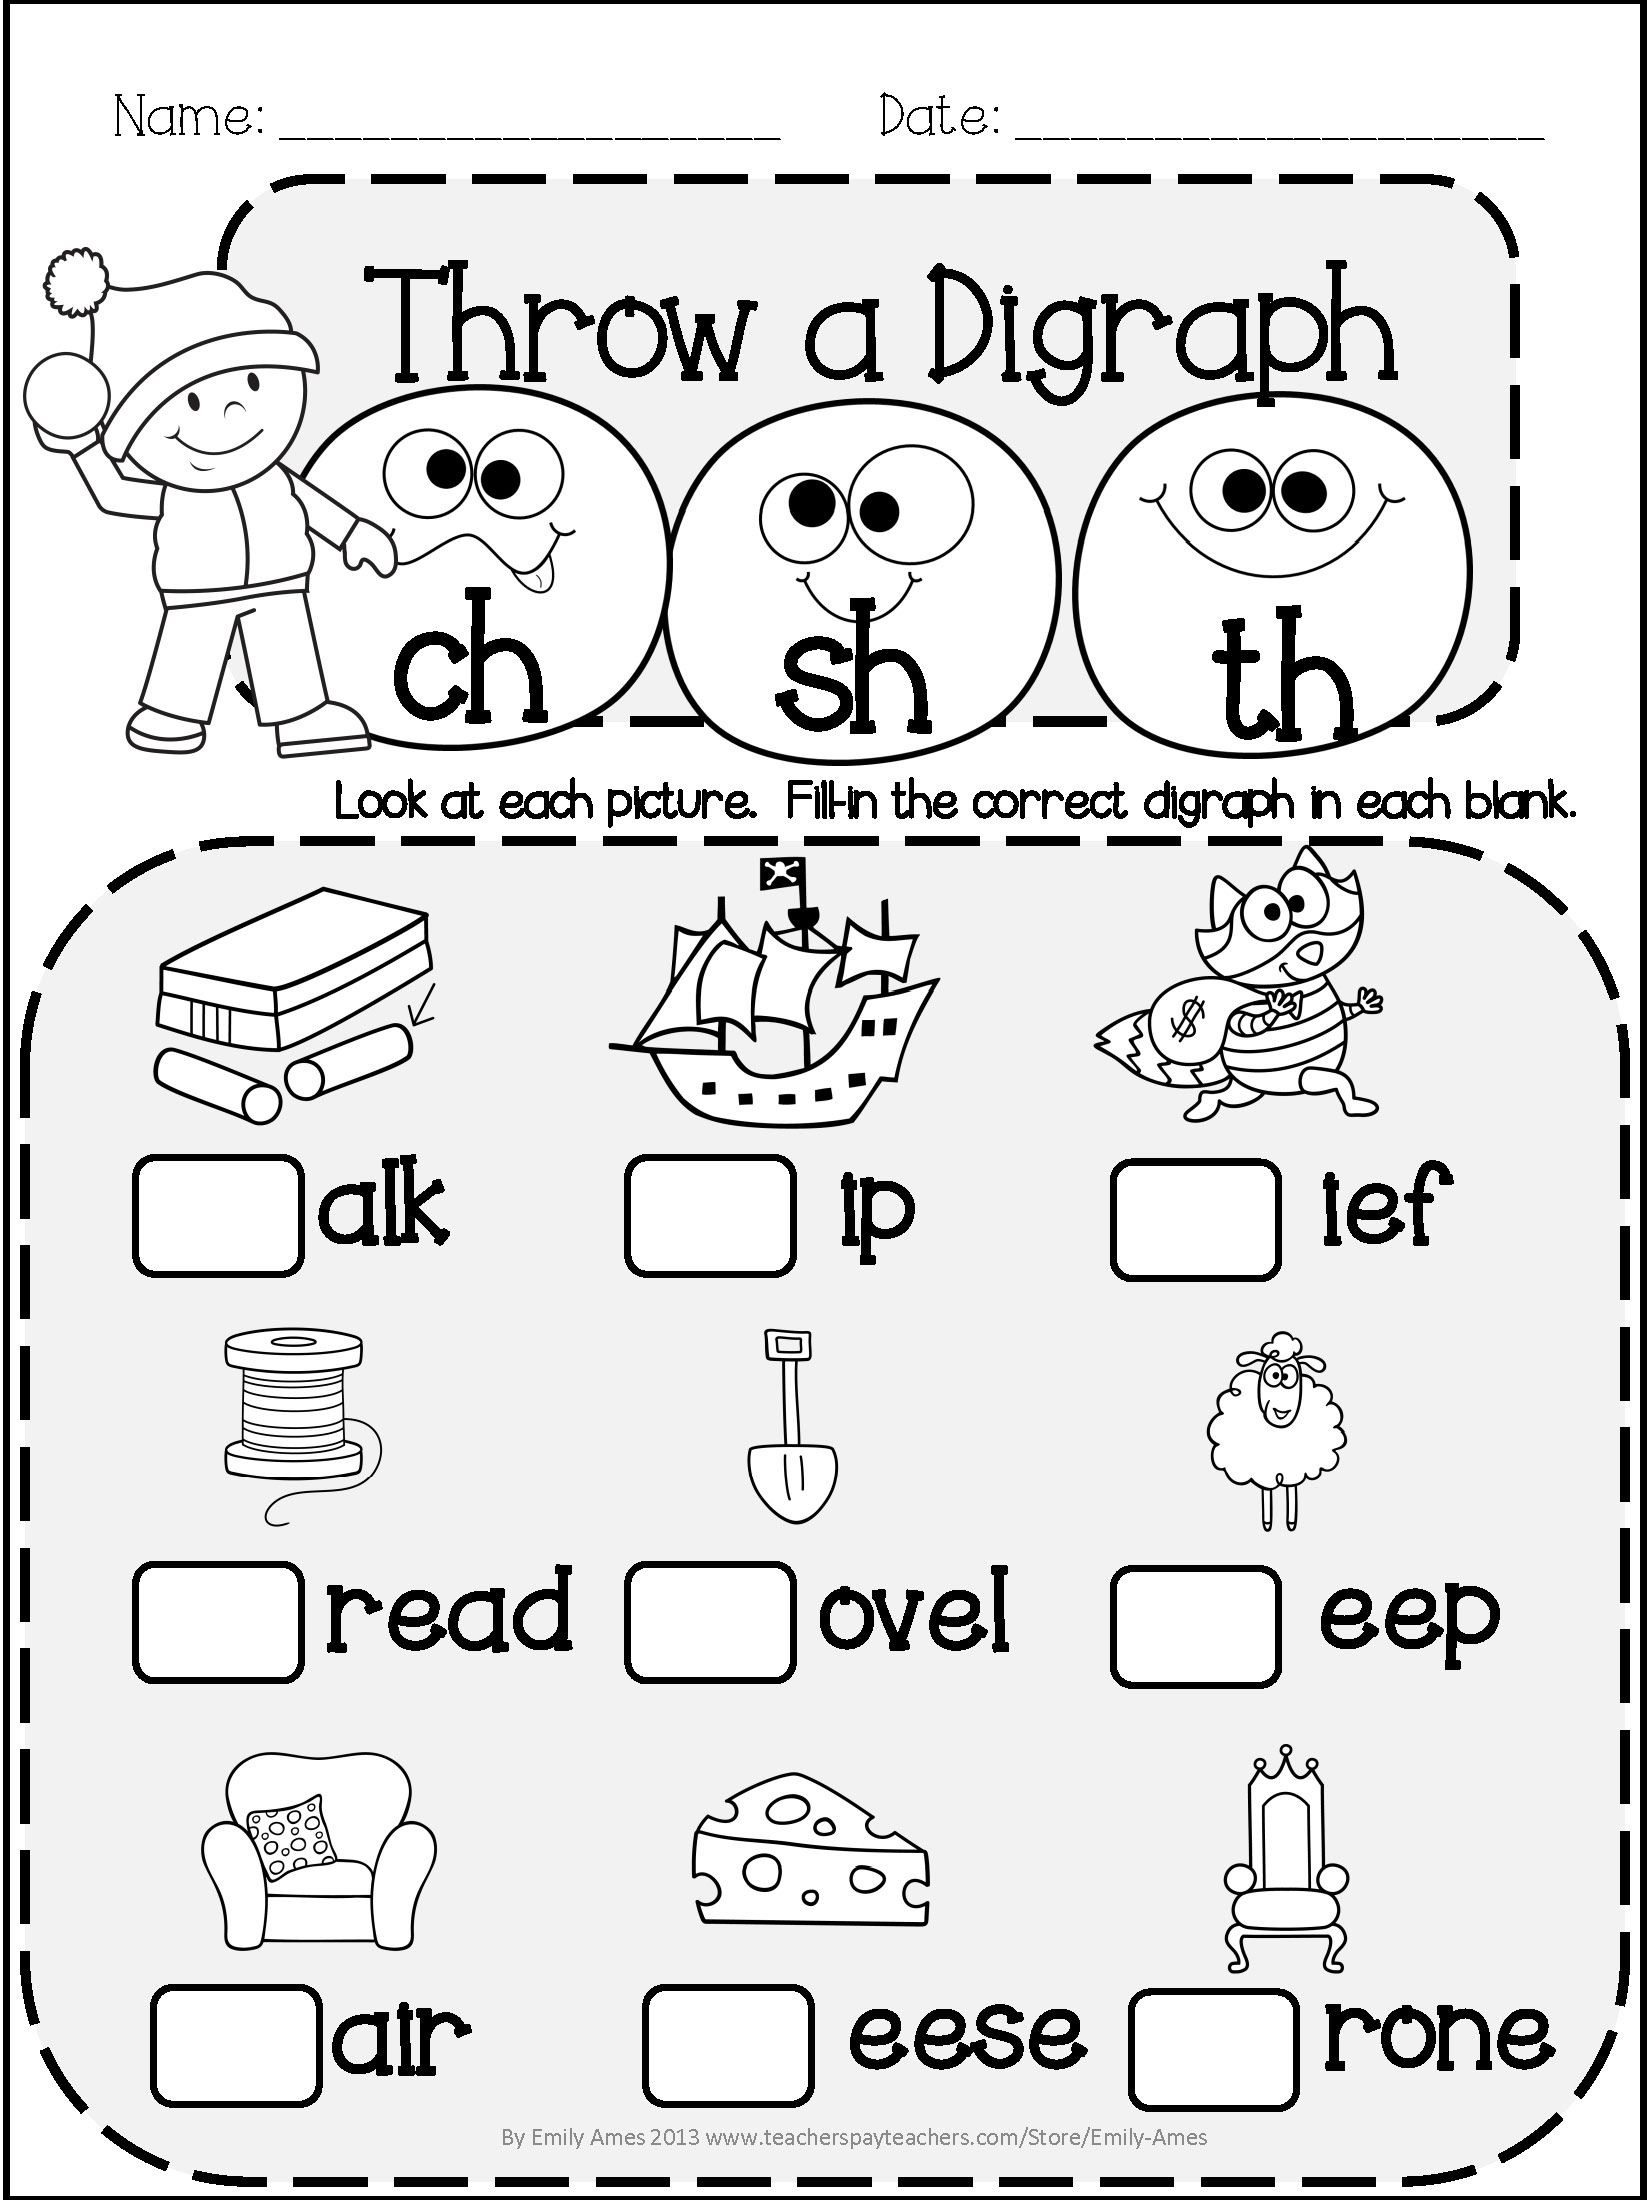 Free Printable Long Vowel Worksheets Winter Literacy Fun Short & Long Vowels Blends and